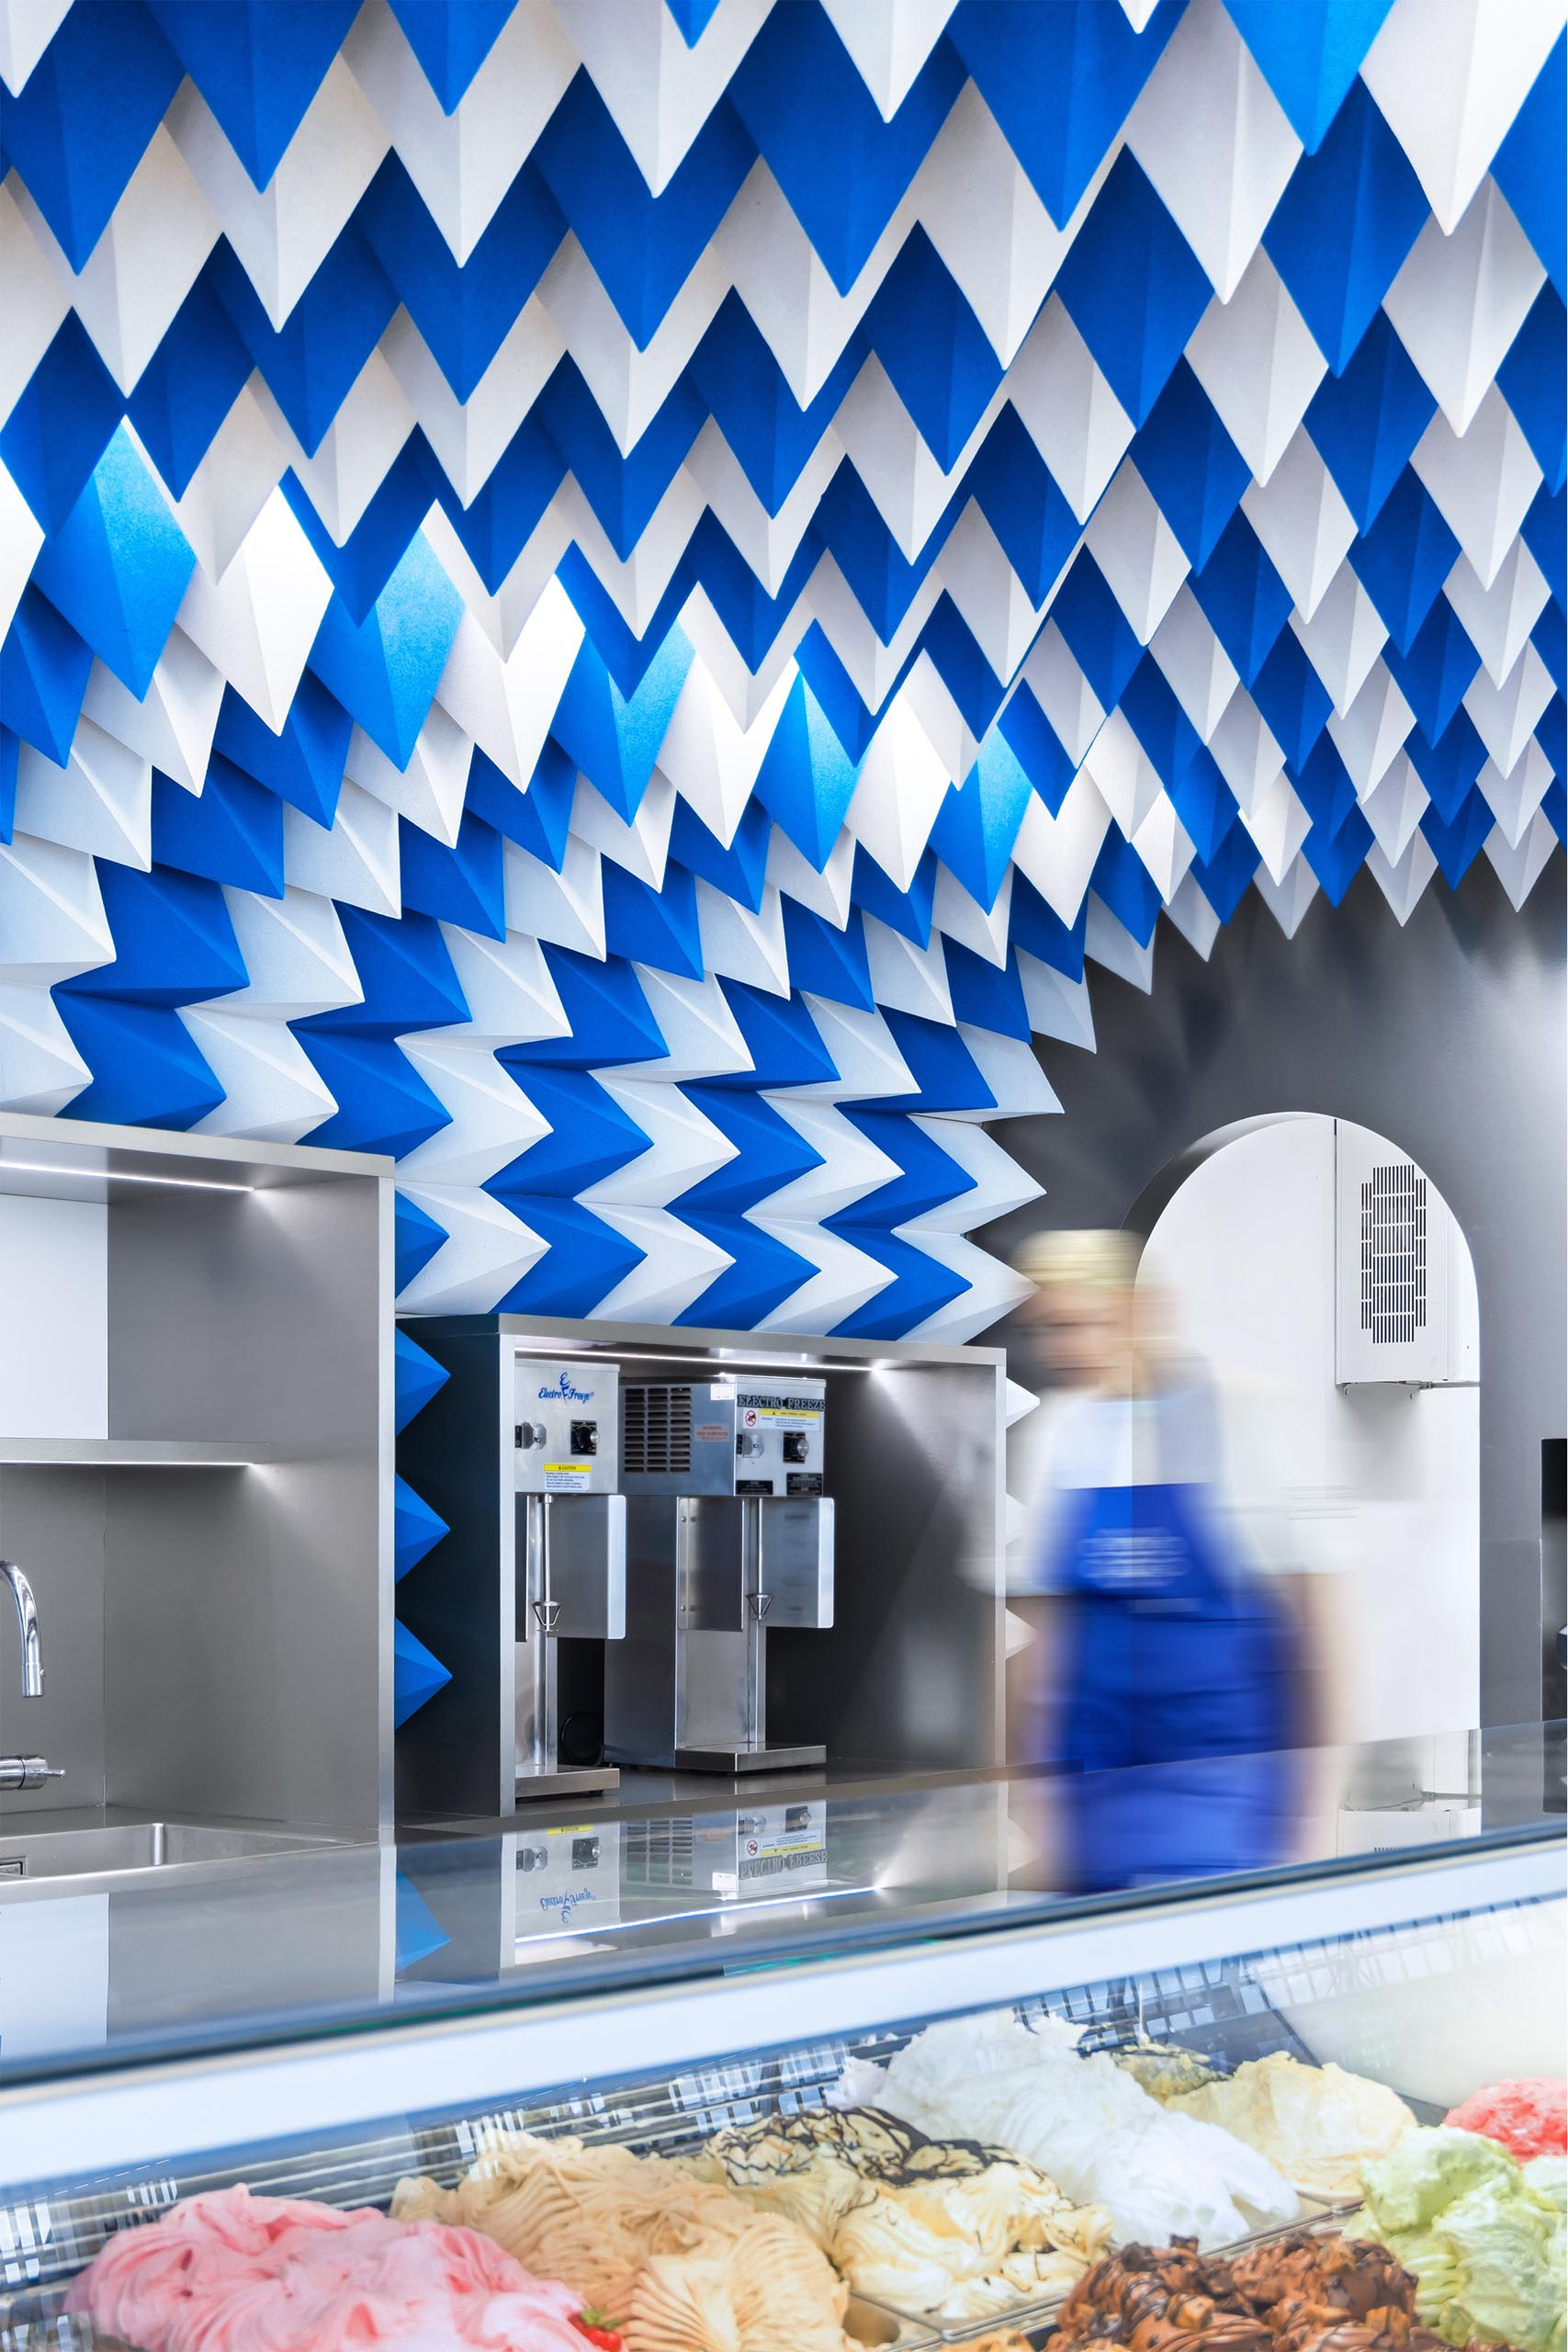 A modern ice cream store with a sculptural ceiling installation